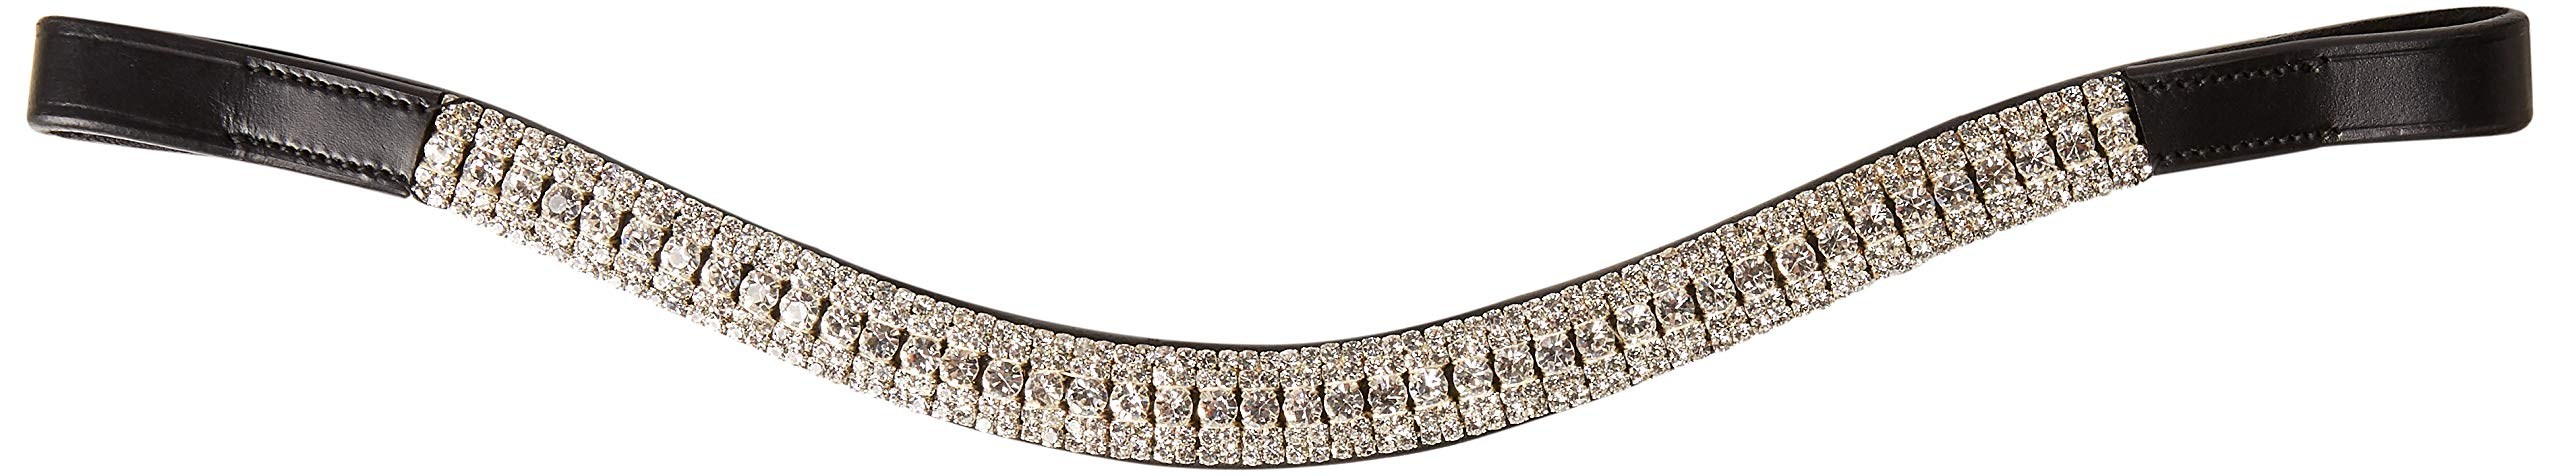 Cwell Equine Look U White Clear Crystal Browband Great Gift Choice of 4 Sizes Black (Full 16'')